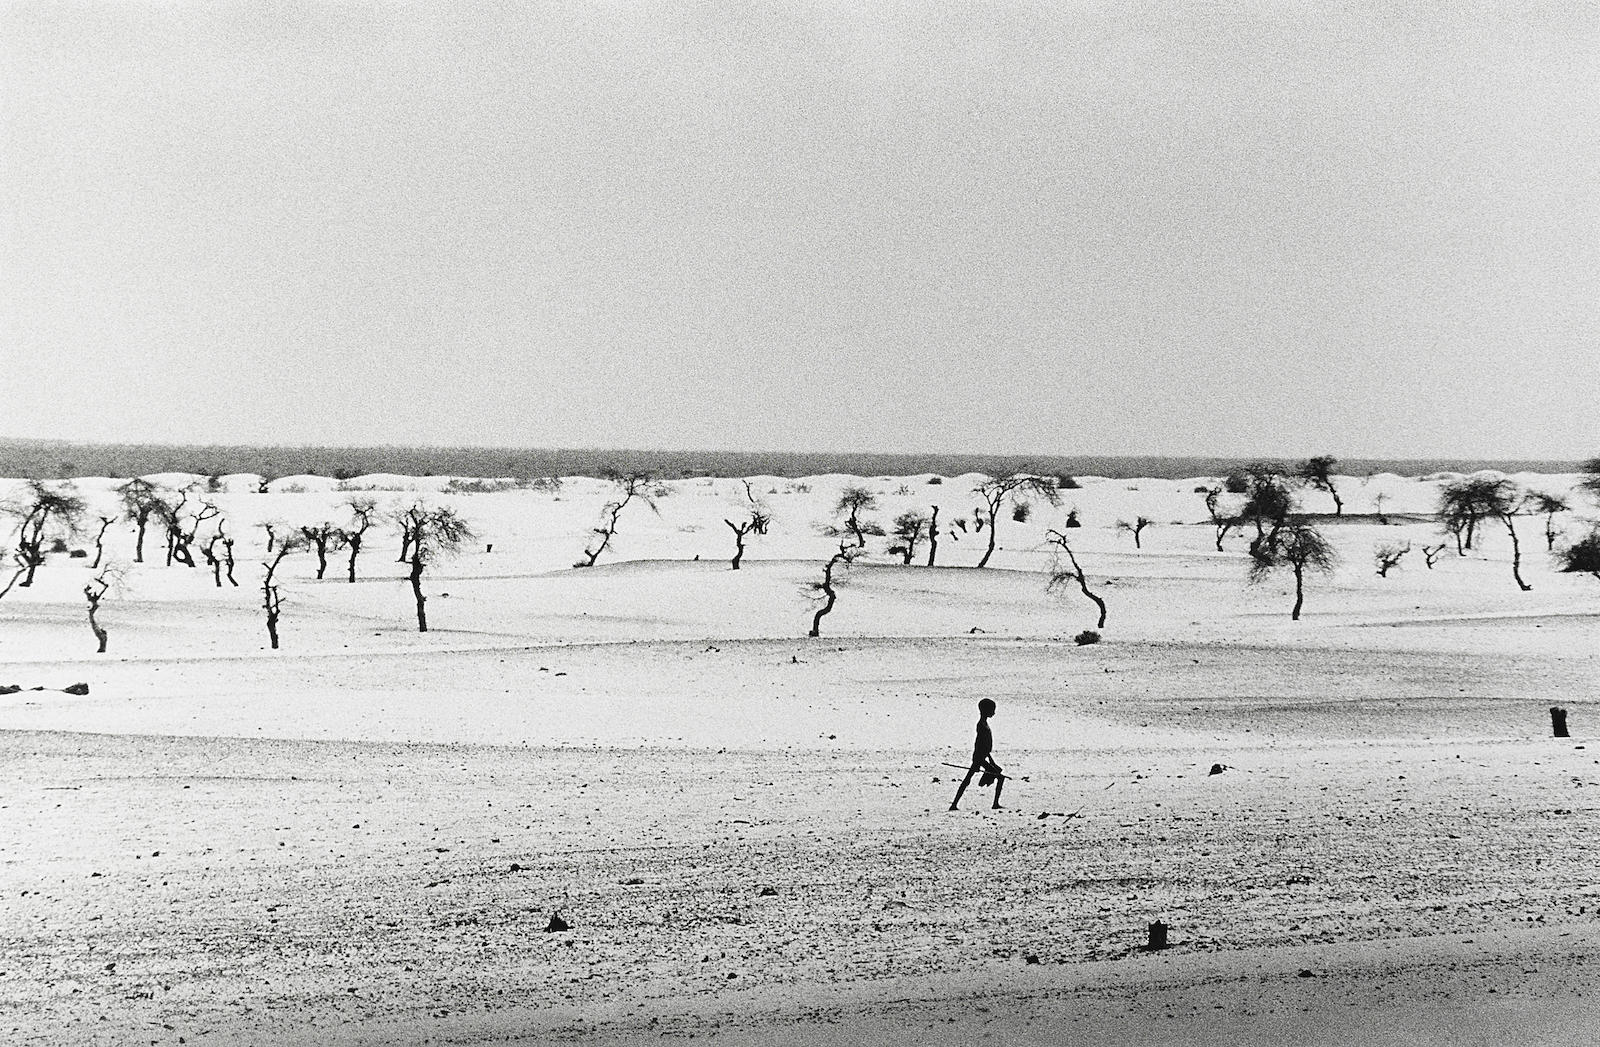 Sebastiao Salgado-Site of the now dried Lake Faguibine, Mali, Africa-1985